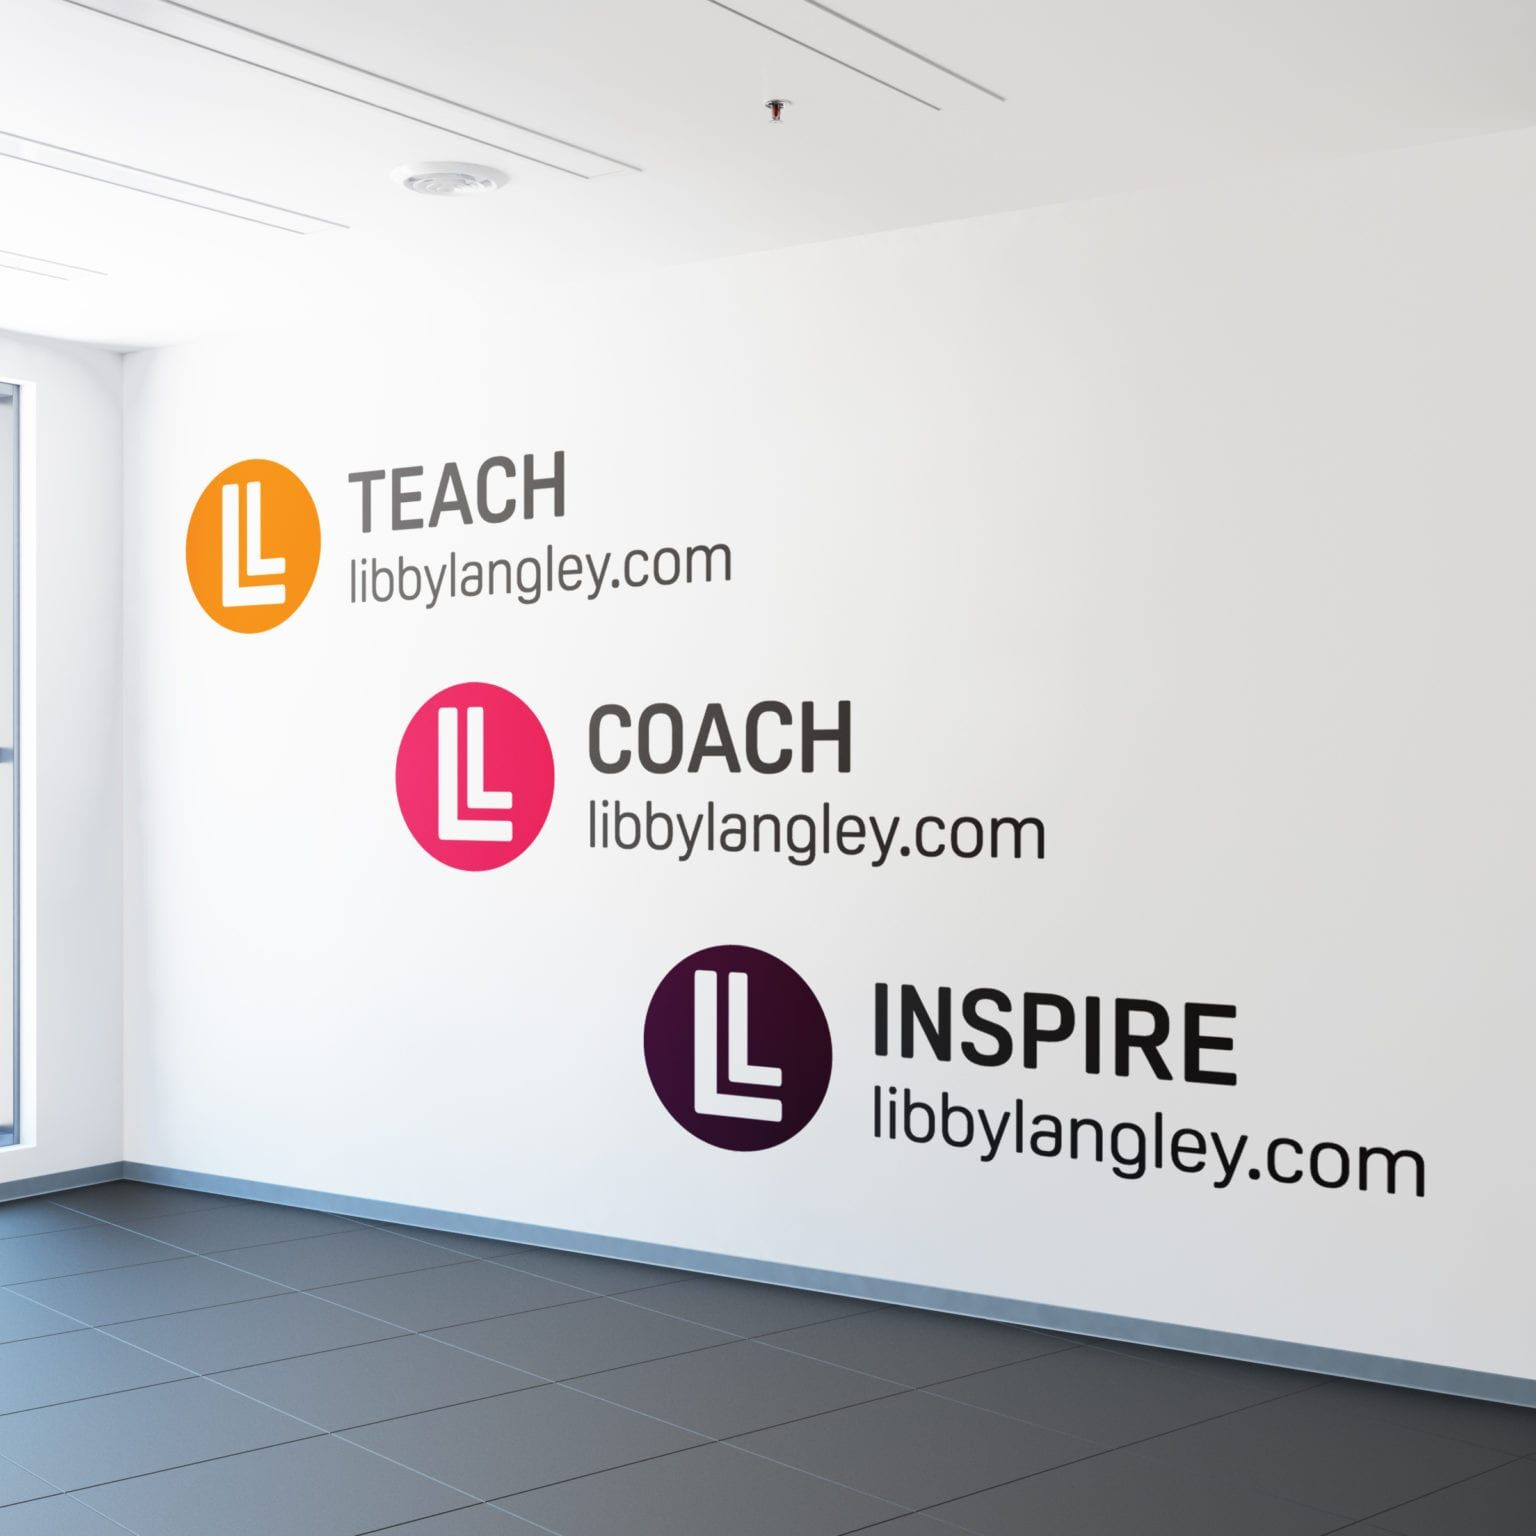 Separate icons created as part of branding project for Libby Langley